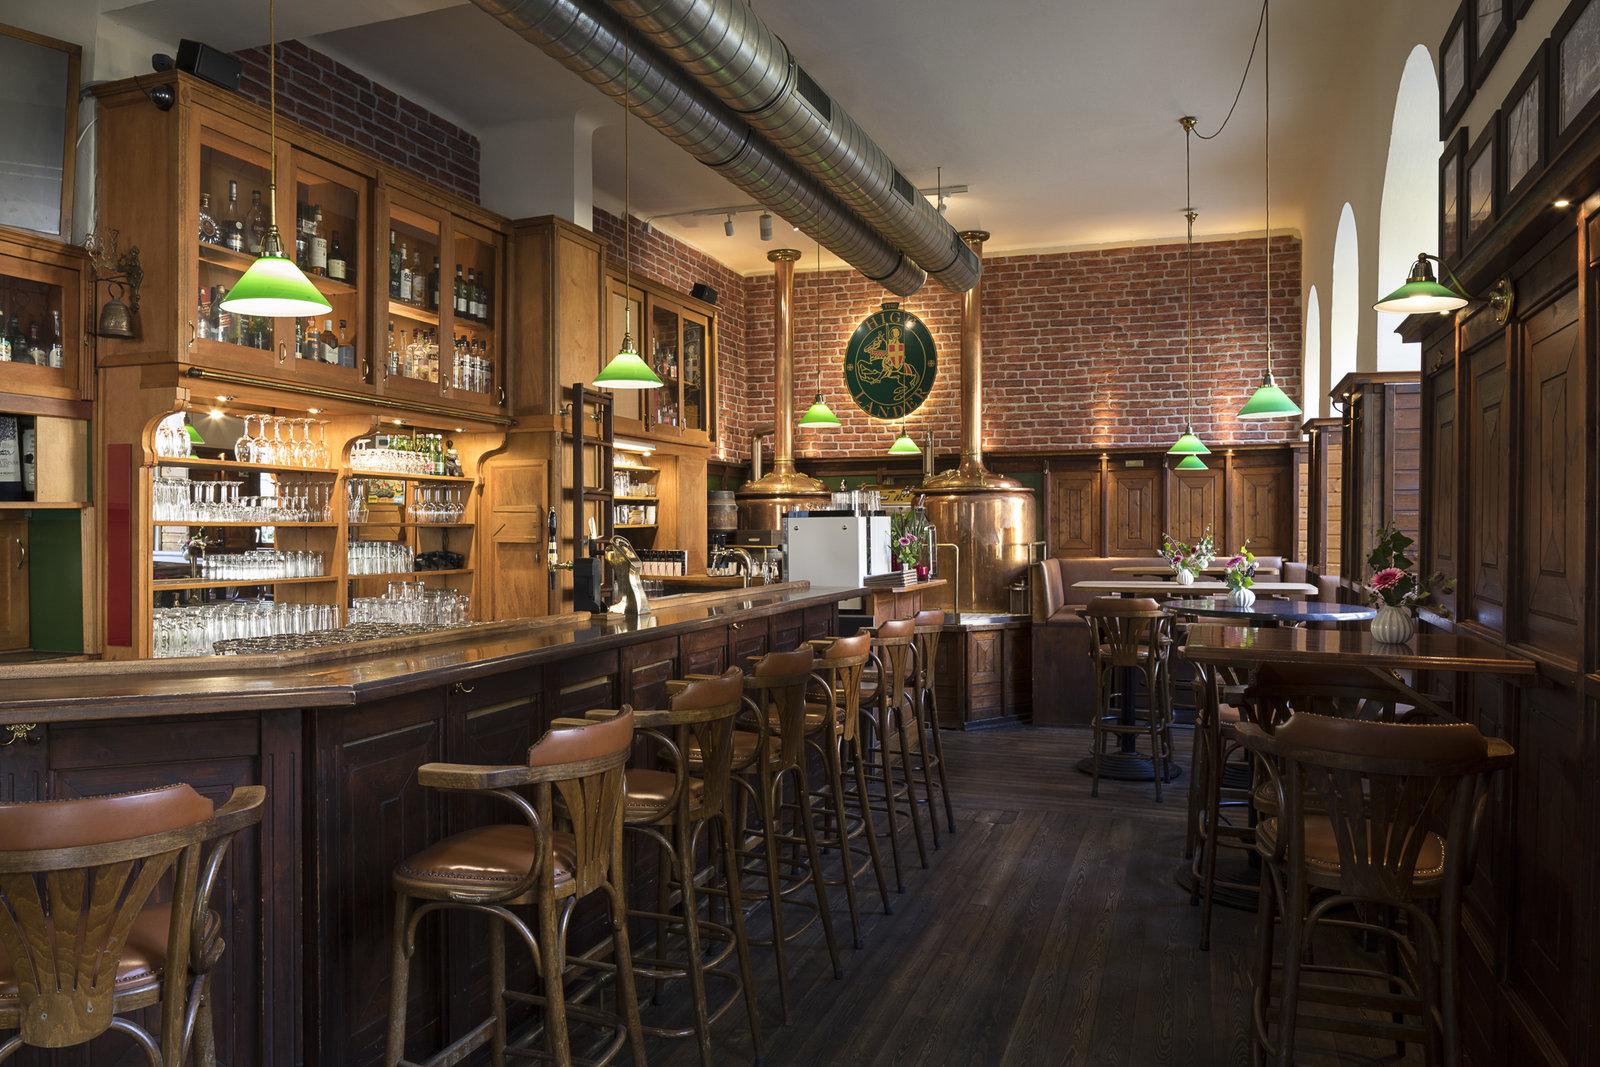 The Highlander Lokal Brauerei